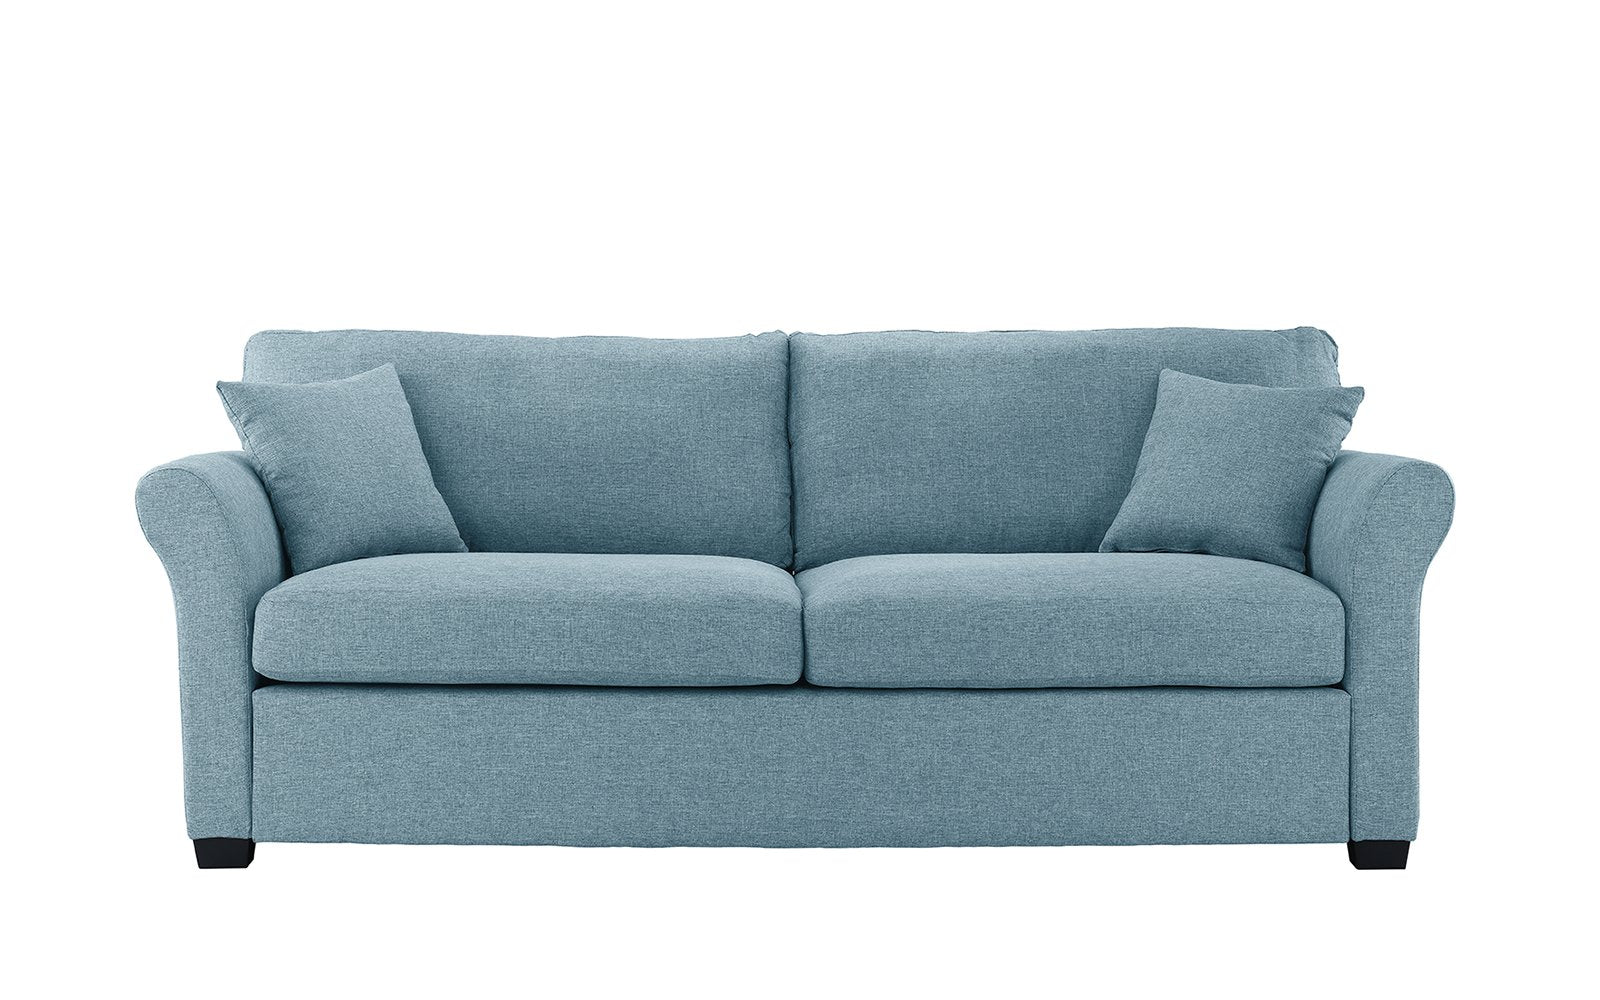 Carlyle Classic Ultra Comfortable Linen Sofa   Sky Blue ...